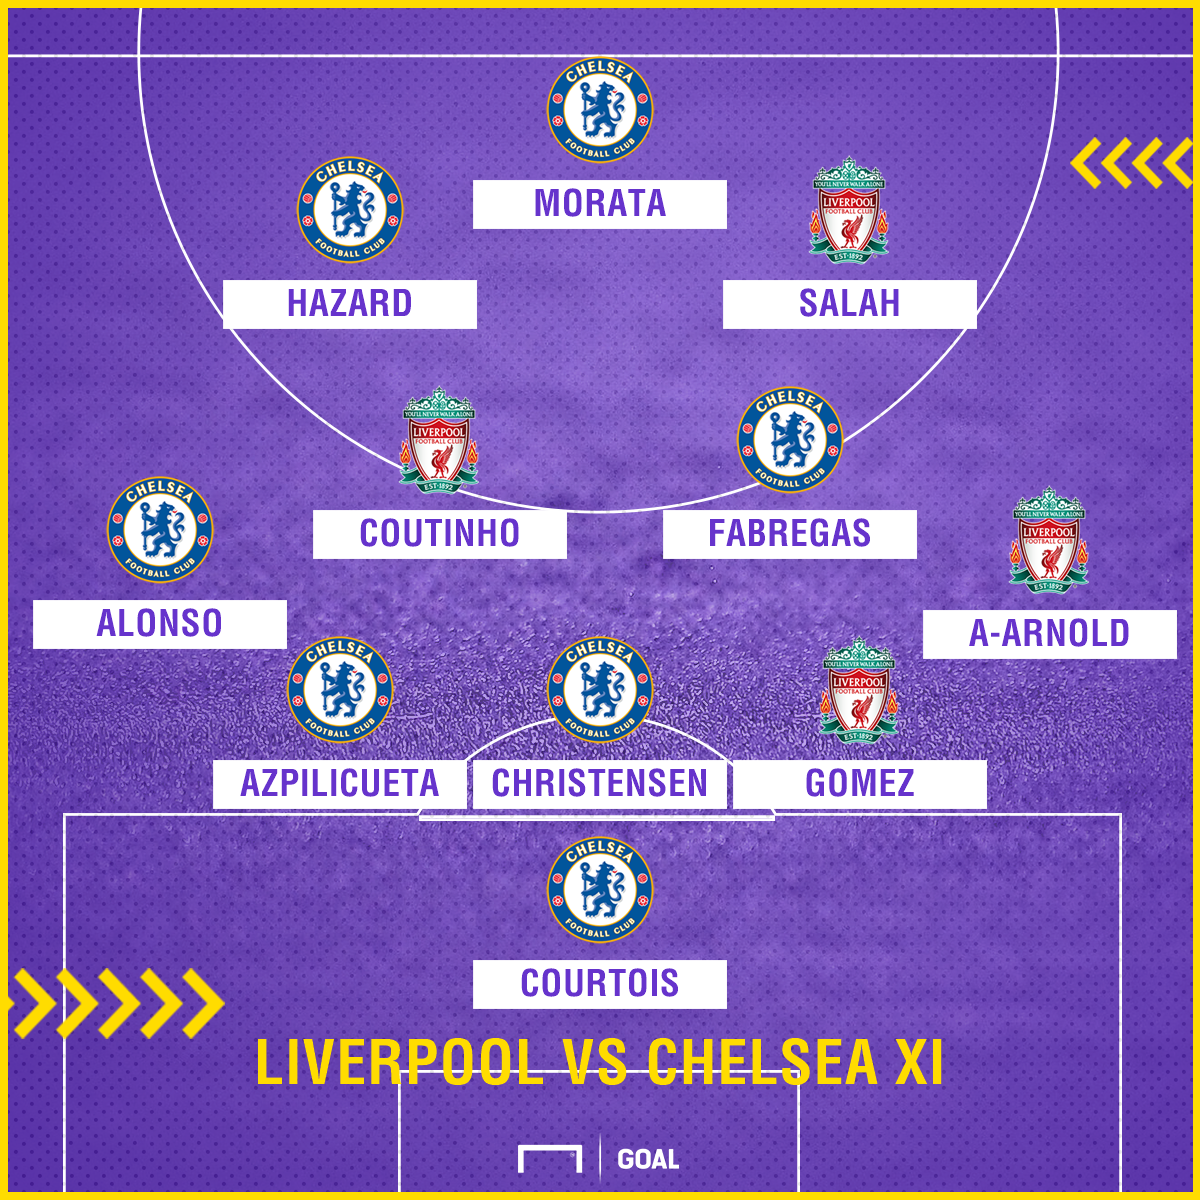 Barcelona Vs Liverpool Who Makes The Combined Xi Ahead Of: Liverpool Vs Chelsea: Who Makes The Combined XI?